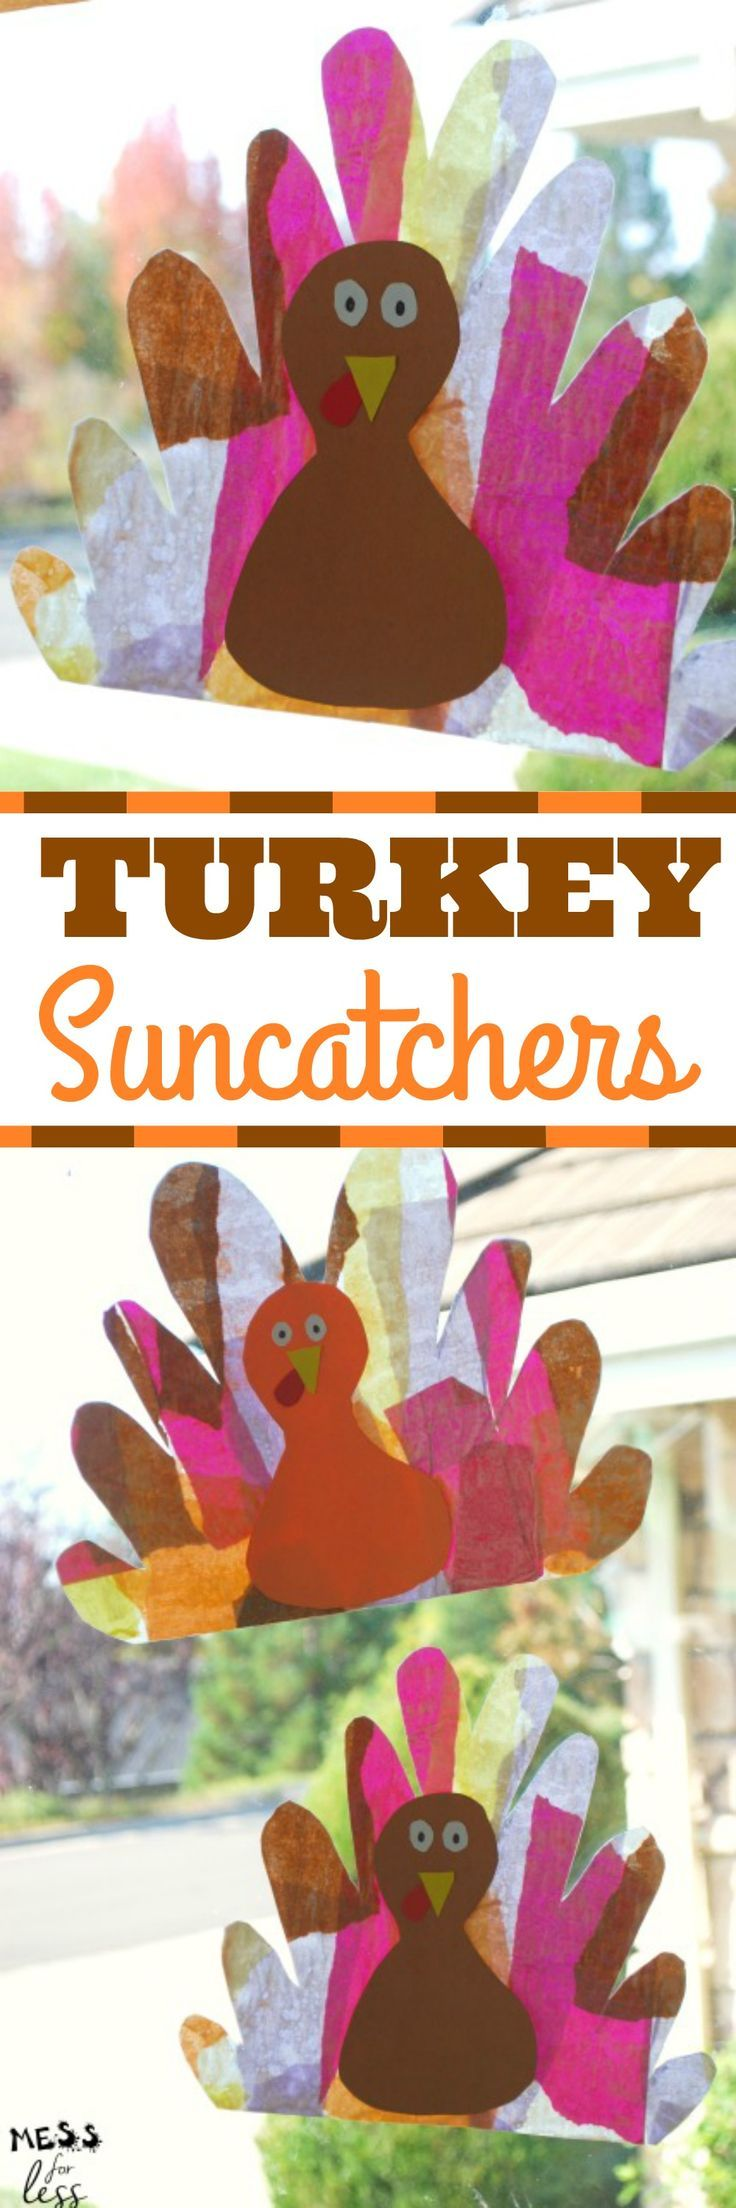 Turkey Suncatcher Craft hang them in